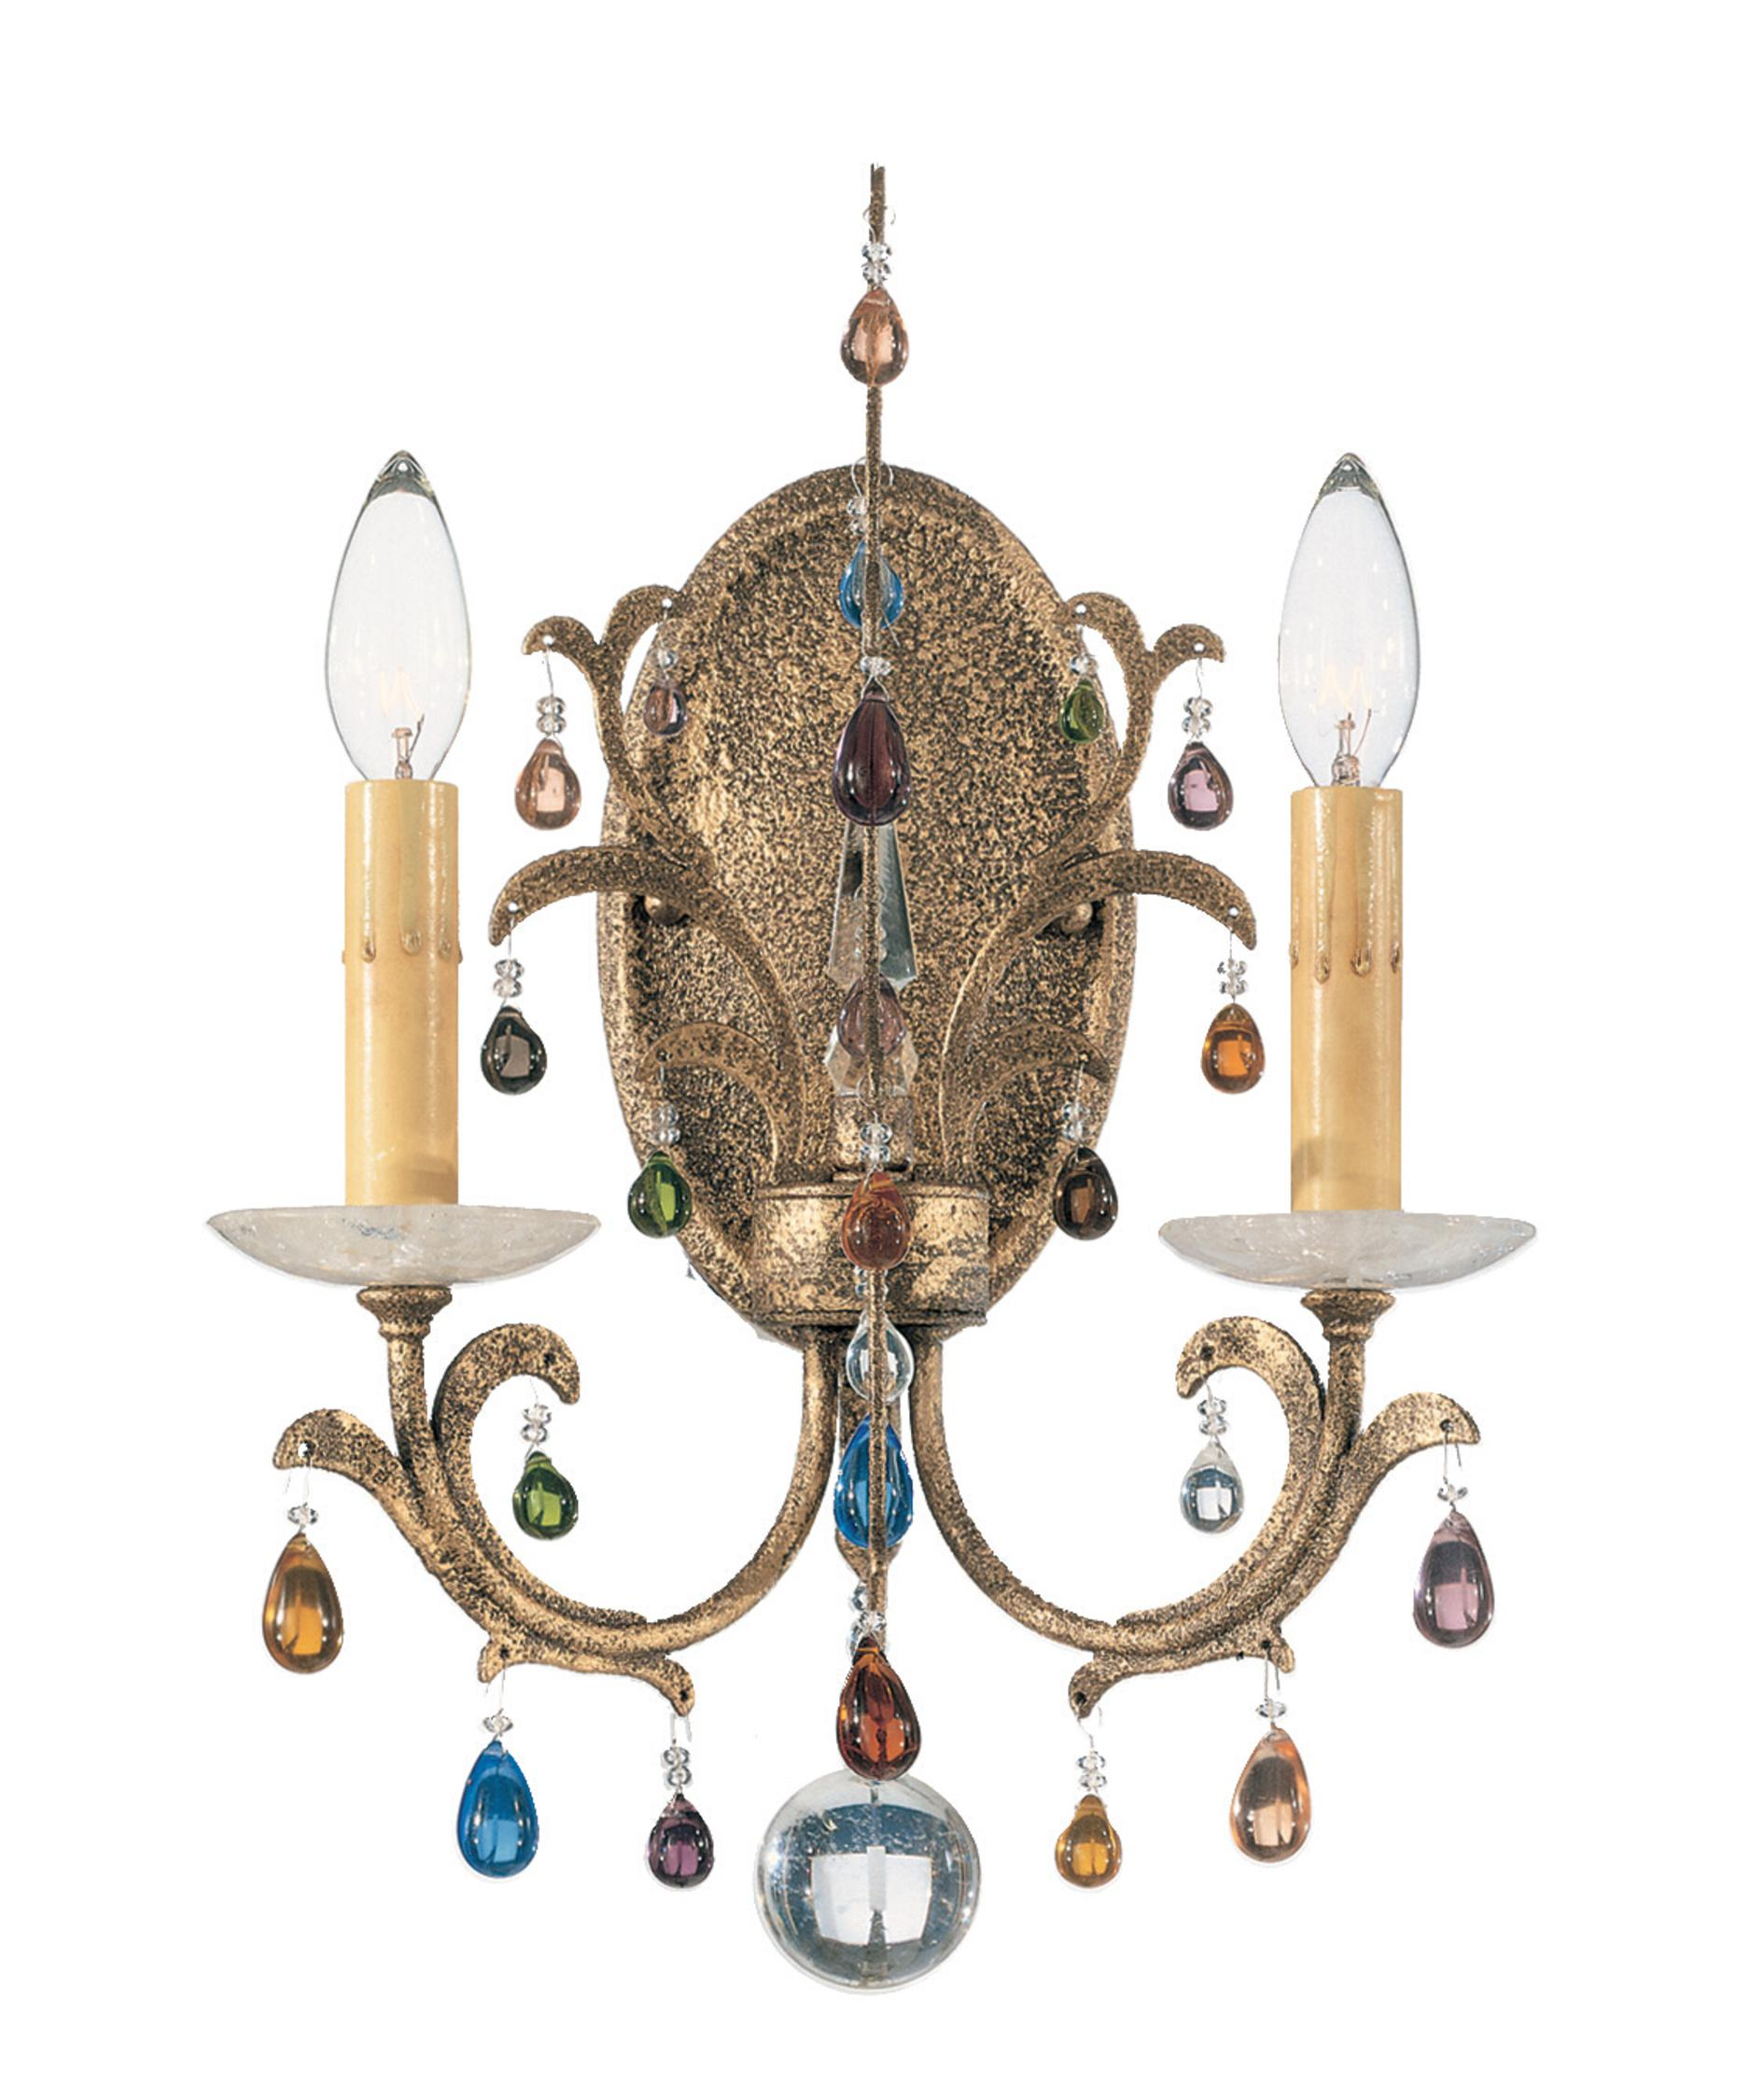 shown in bronze gold finish and jewel tones and rock crystal